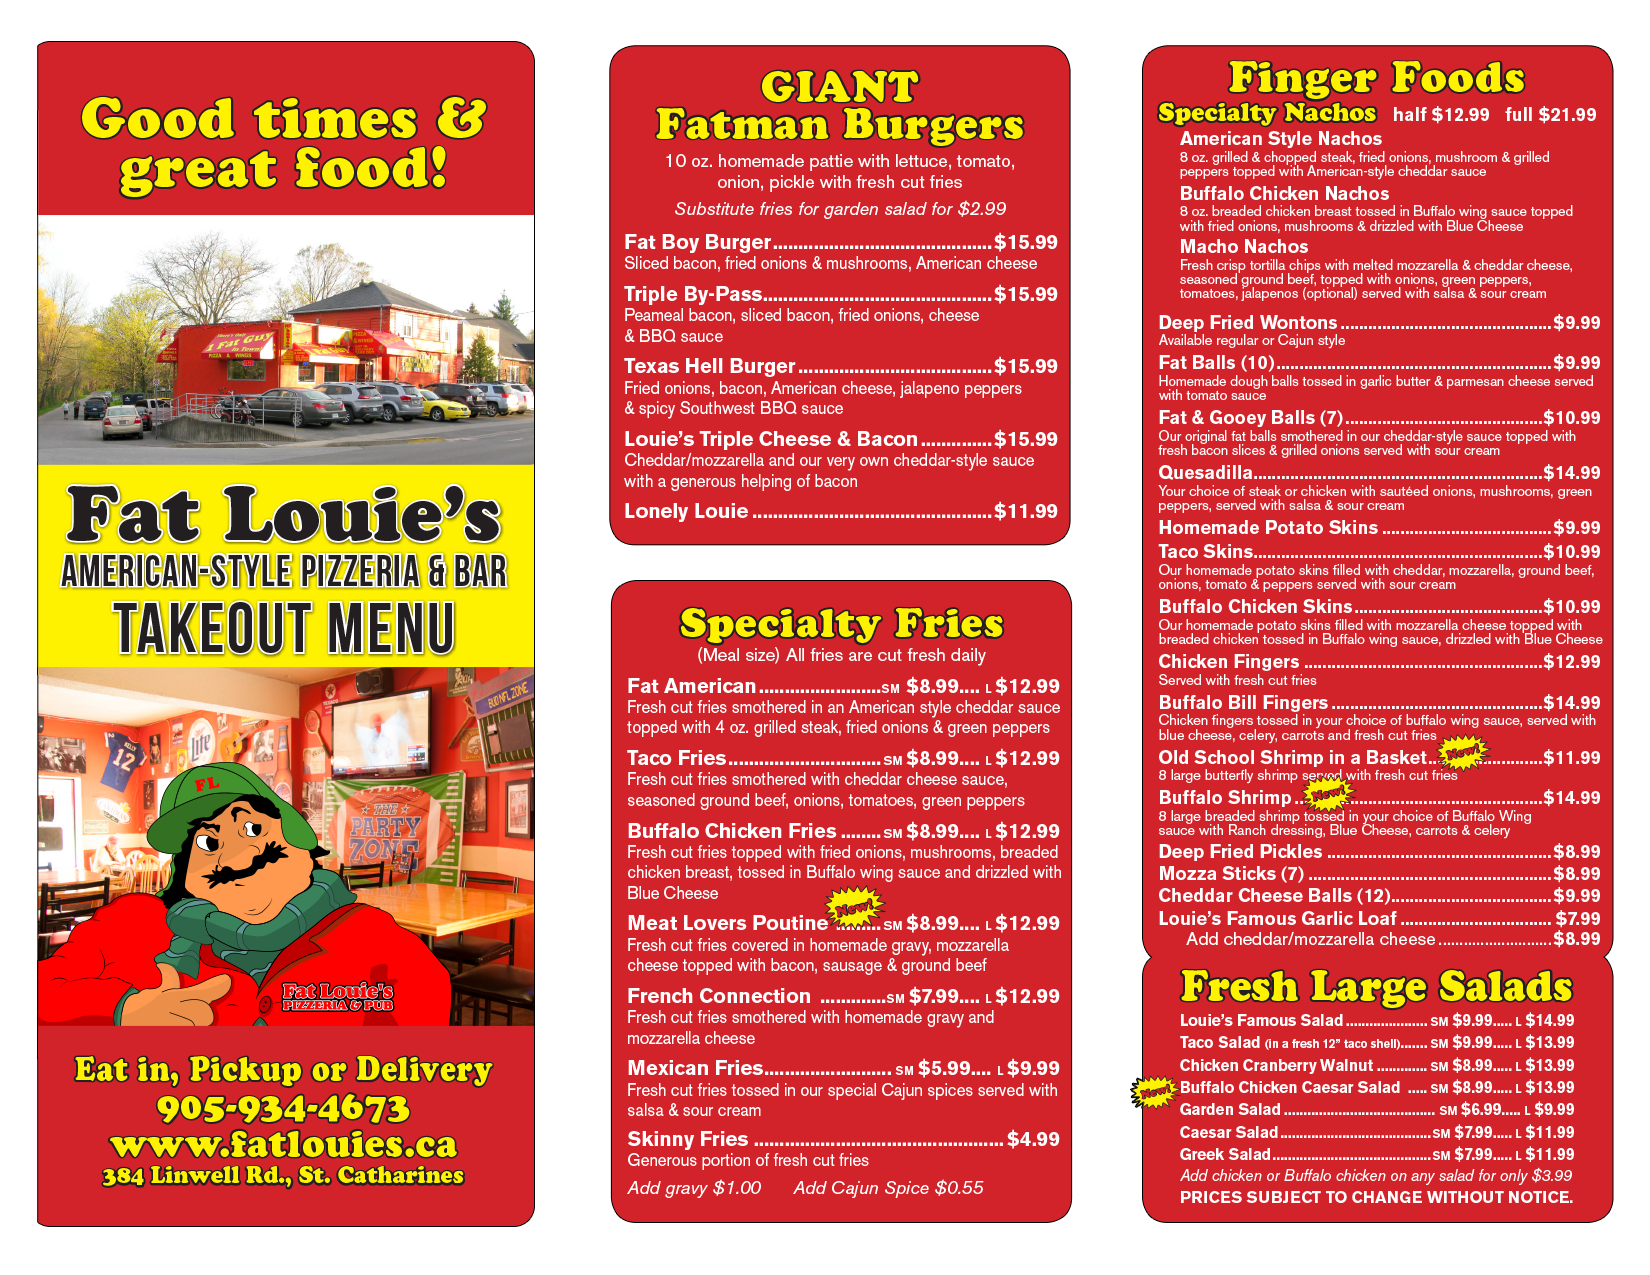 Fat Louie's Pizza and Wings in St. Catharines